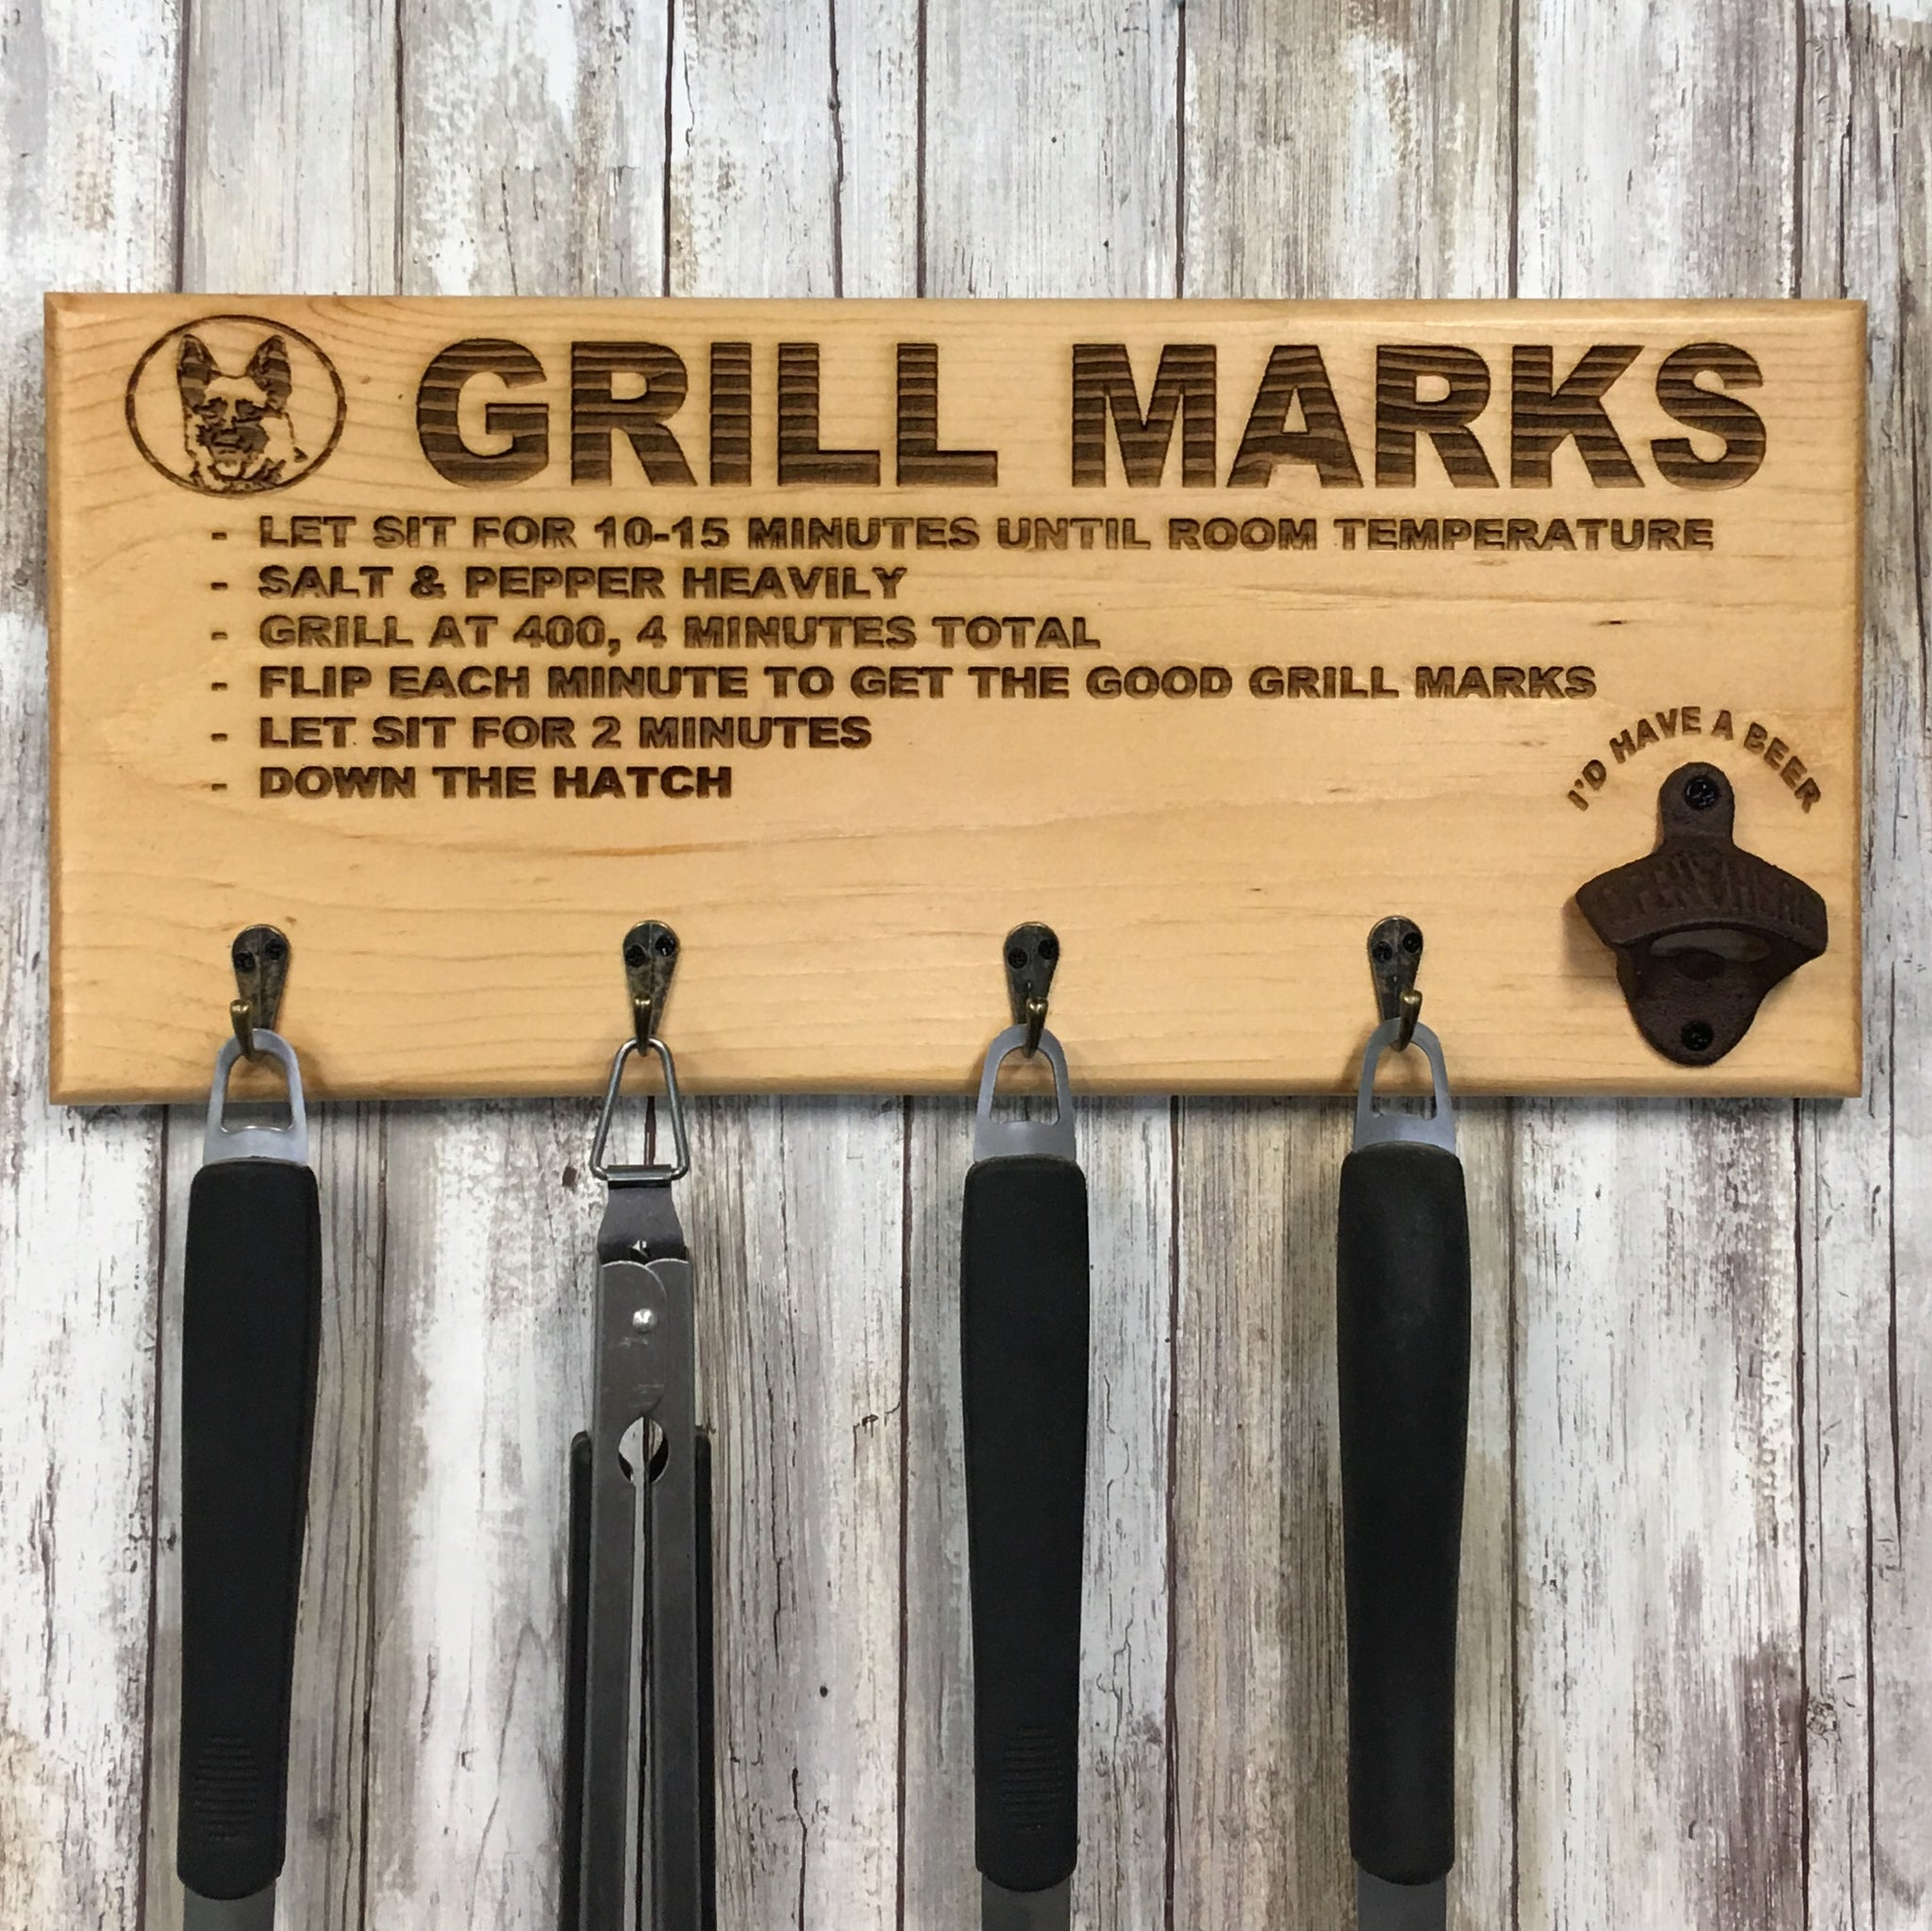 Letterkenny Grill Marks Barbecue Tool Holder with Beer Opener - Laser Engraved Pine Wood